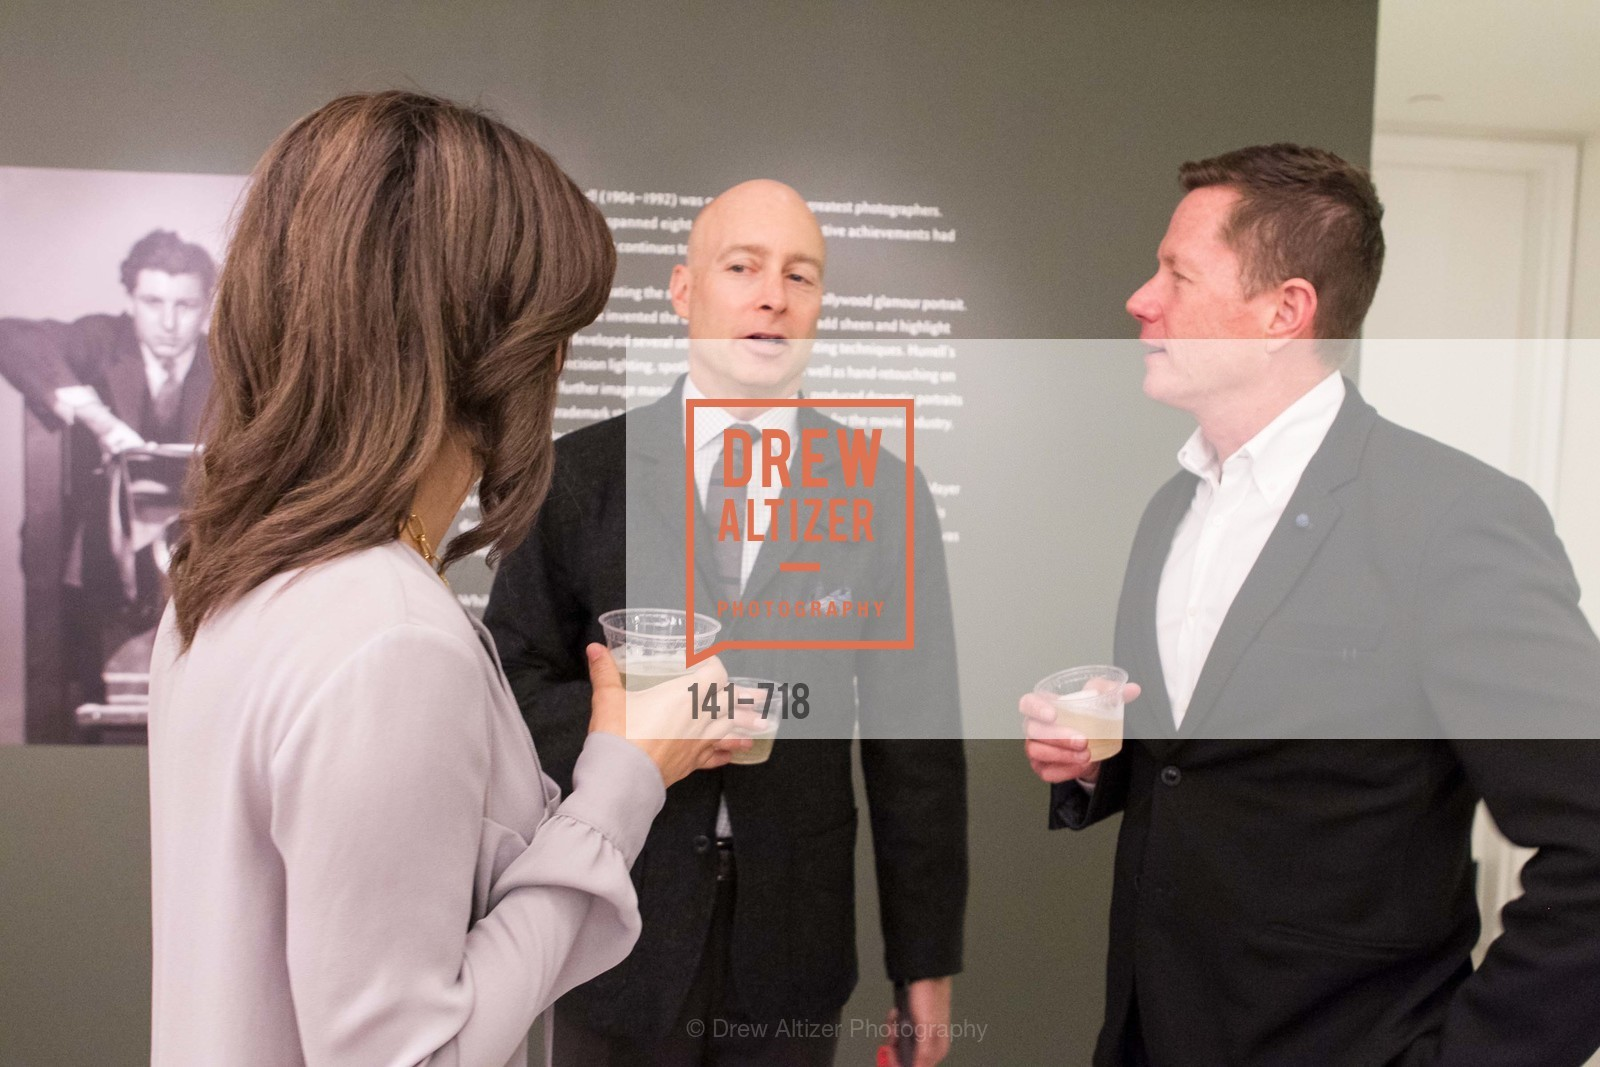 Andy Schanbacher, Chris Eskra, ICAA Hosts NICKY HASLAM'S Lecture and Book Signing, US, May 12th, 2015,Drew Altizer, Drew Altizer Photography, full-service agency, private events, San Francisco photographer, photographer california